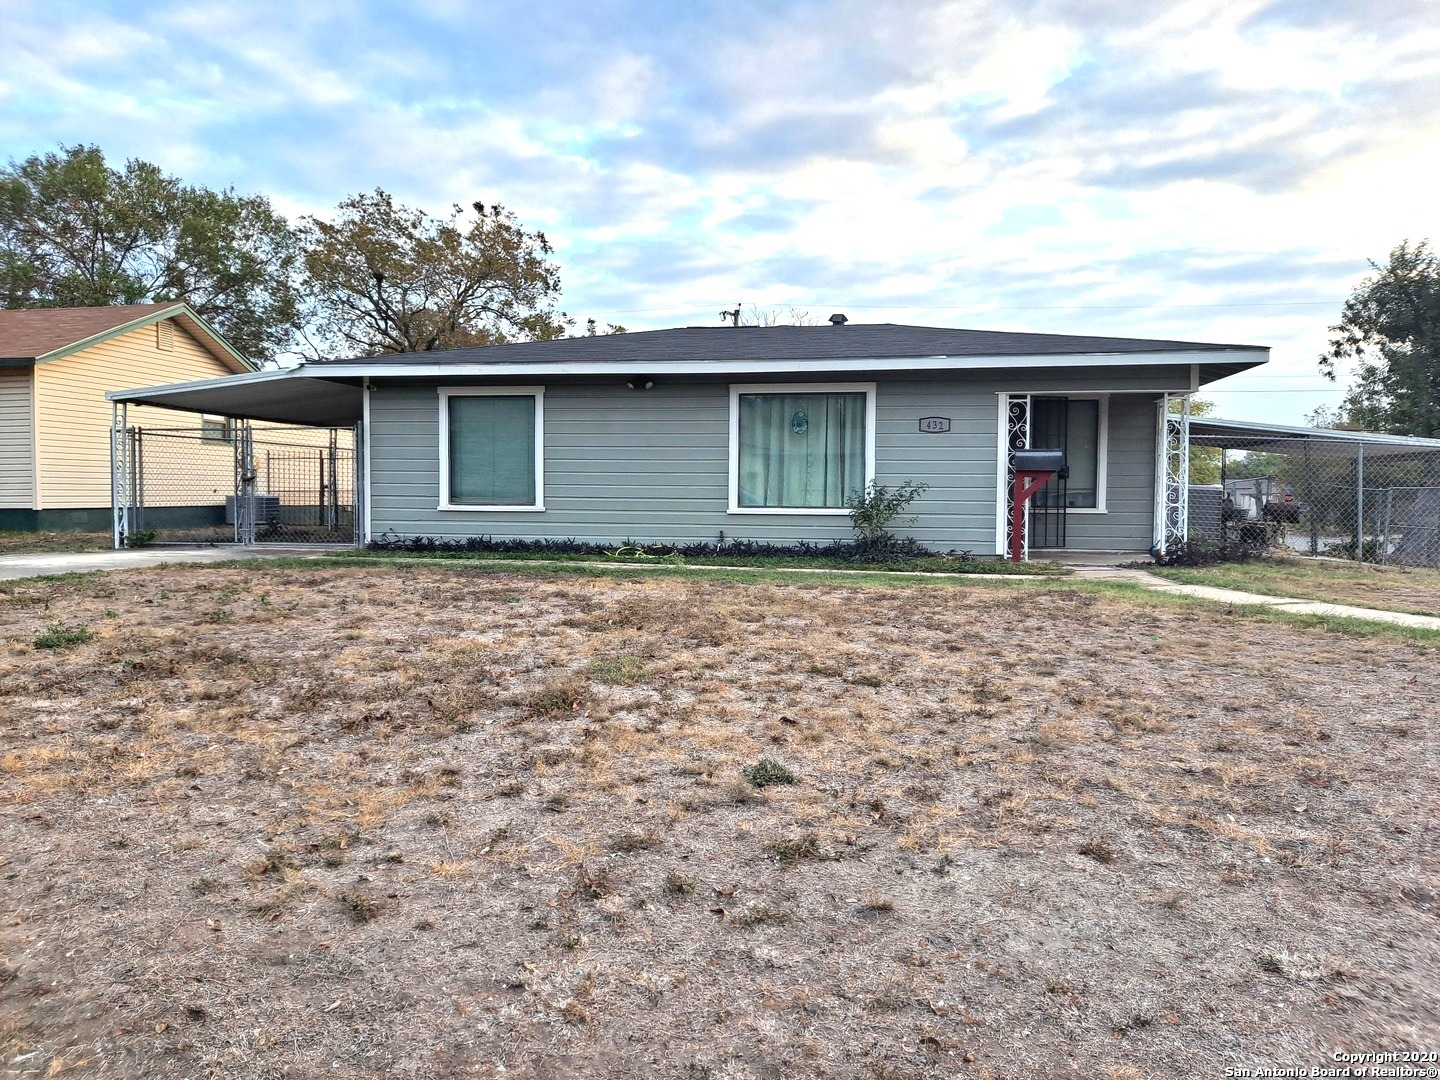 Wow Location, Location, big corner lot house freshly painted exterior ,and workshop,original hardwoo